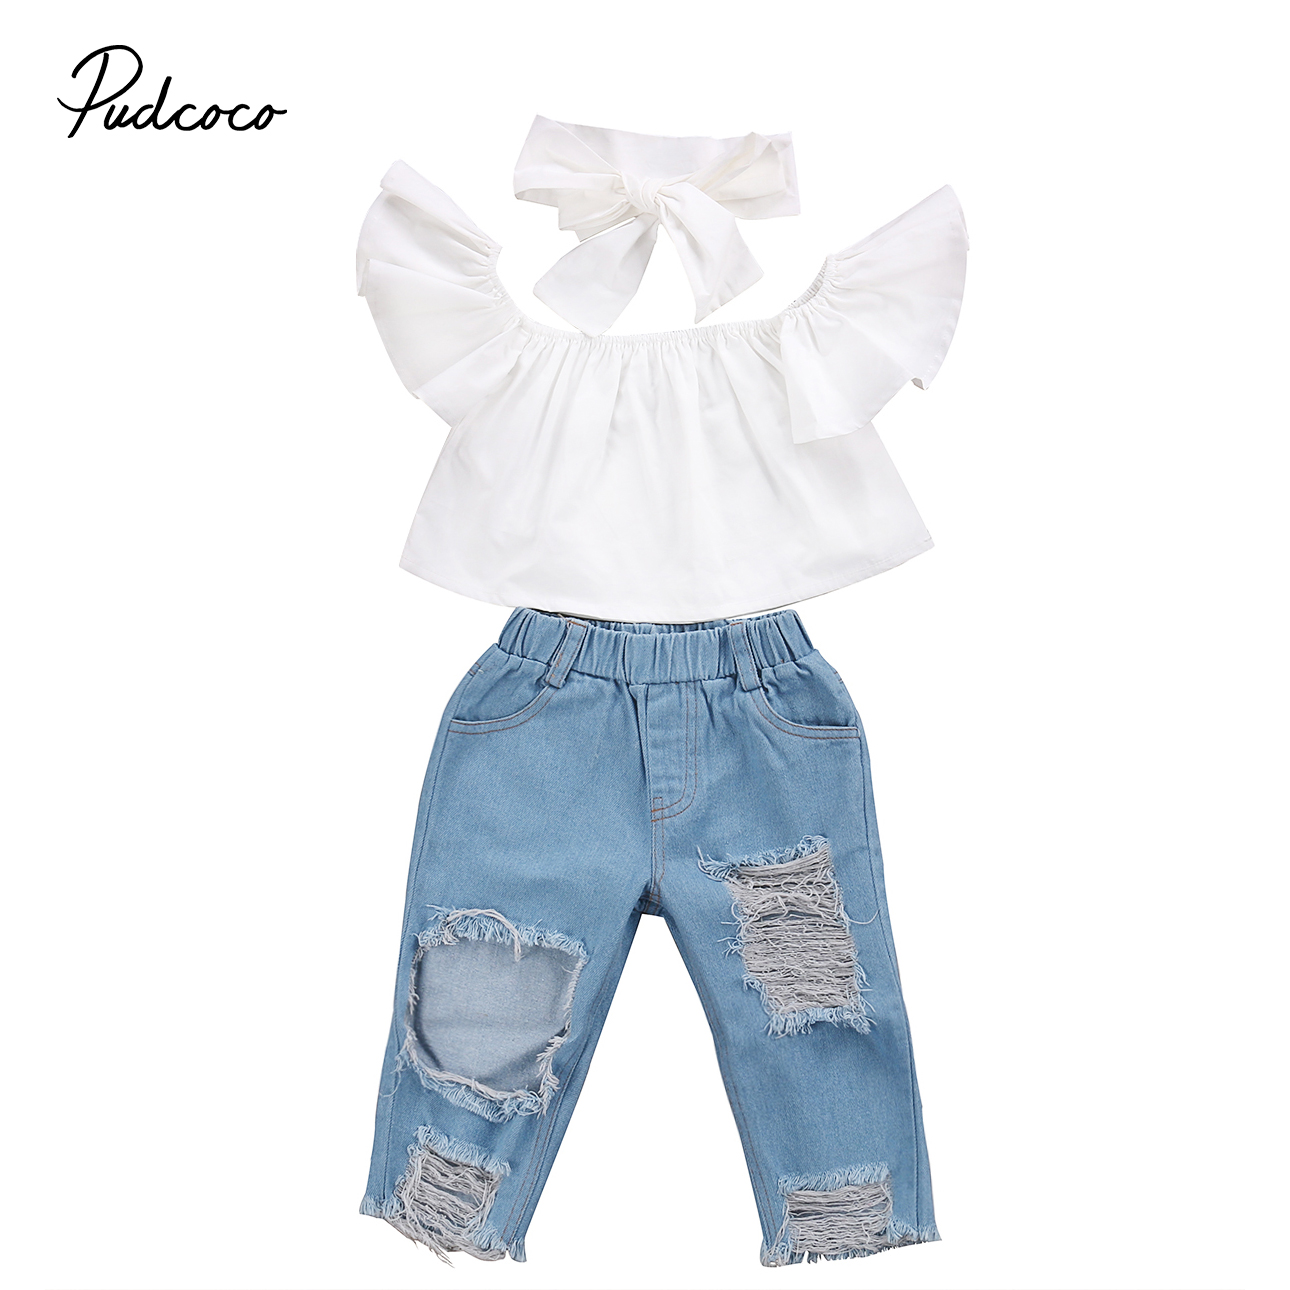 3Pcs Infantil Baby Girls Off Shoulder Casual Tops Ruffle T-shirts Toddler Girls Kid Denim Jeans Kids Baby Suit Toddler Clothes 3pcs outfit infantil girls clothes toddler baby girl plaid ruffled tops kids girls denim shorts cute headband summer outfits set